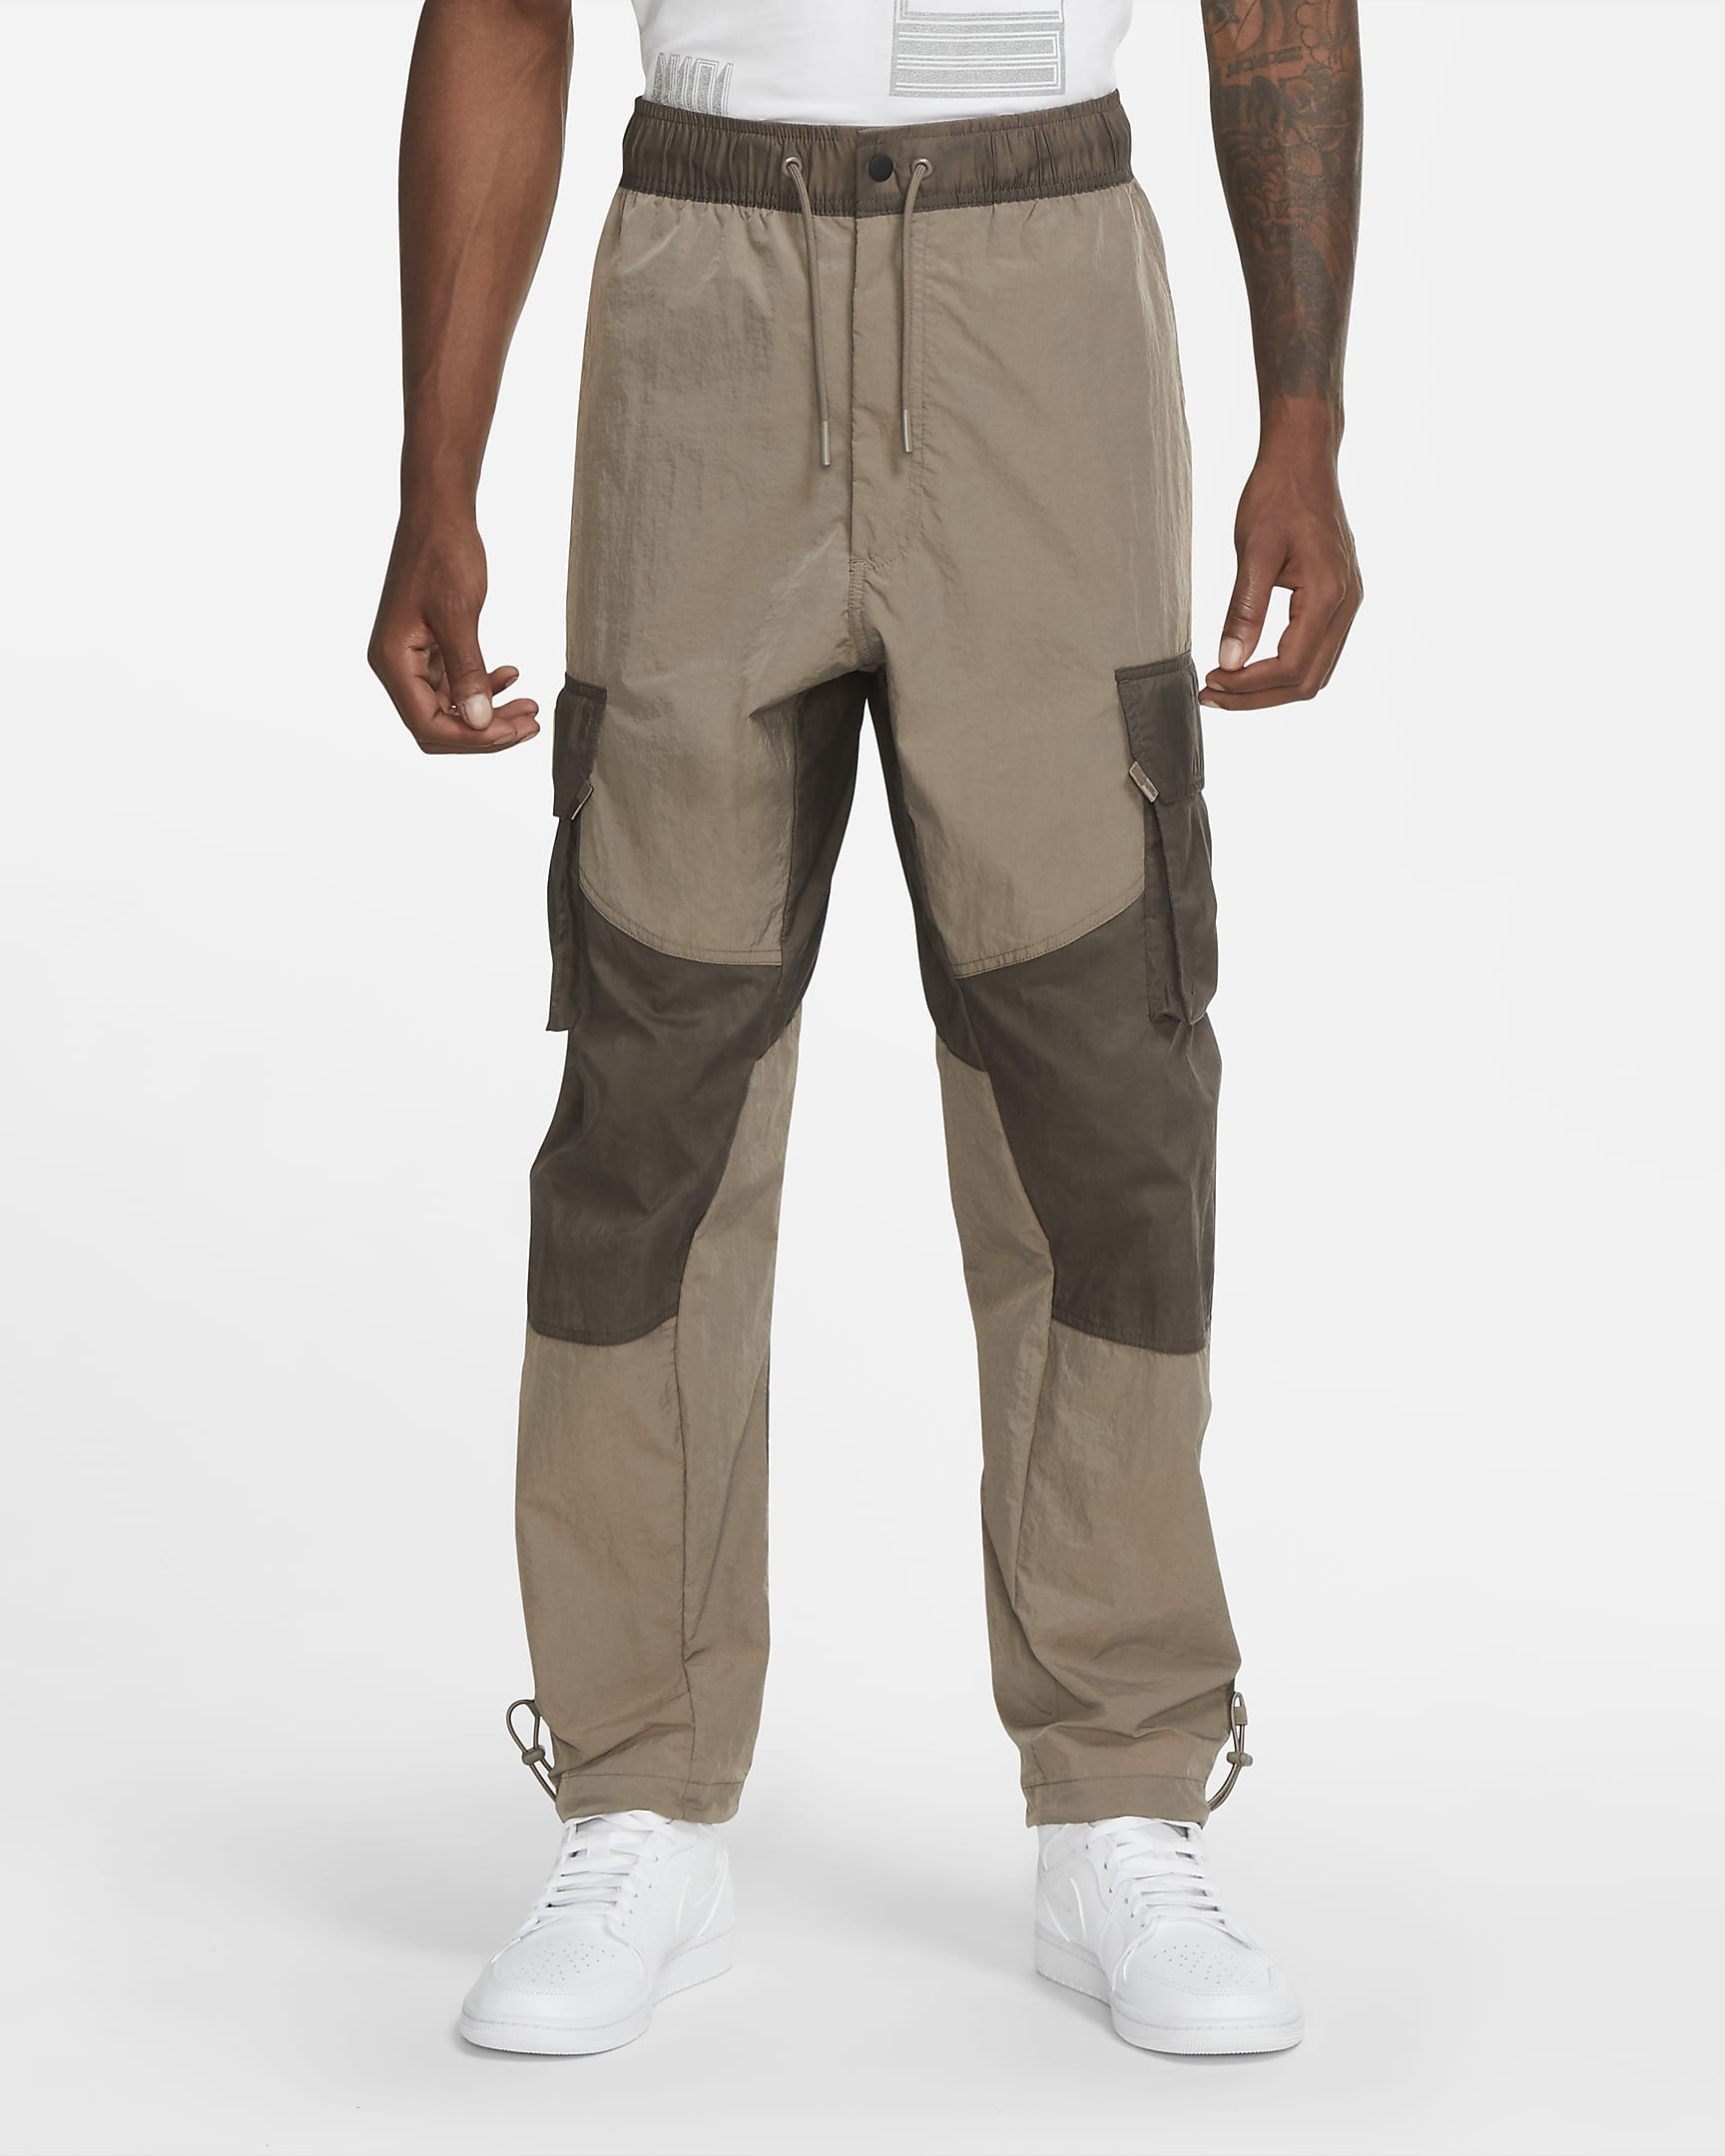 jordan-23-engineered-mens-cargo-pants-HtXMBm-4